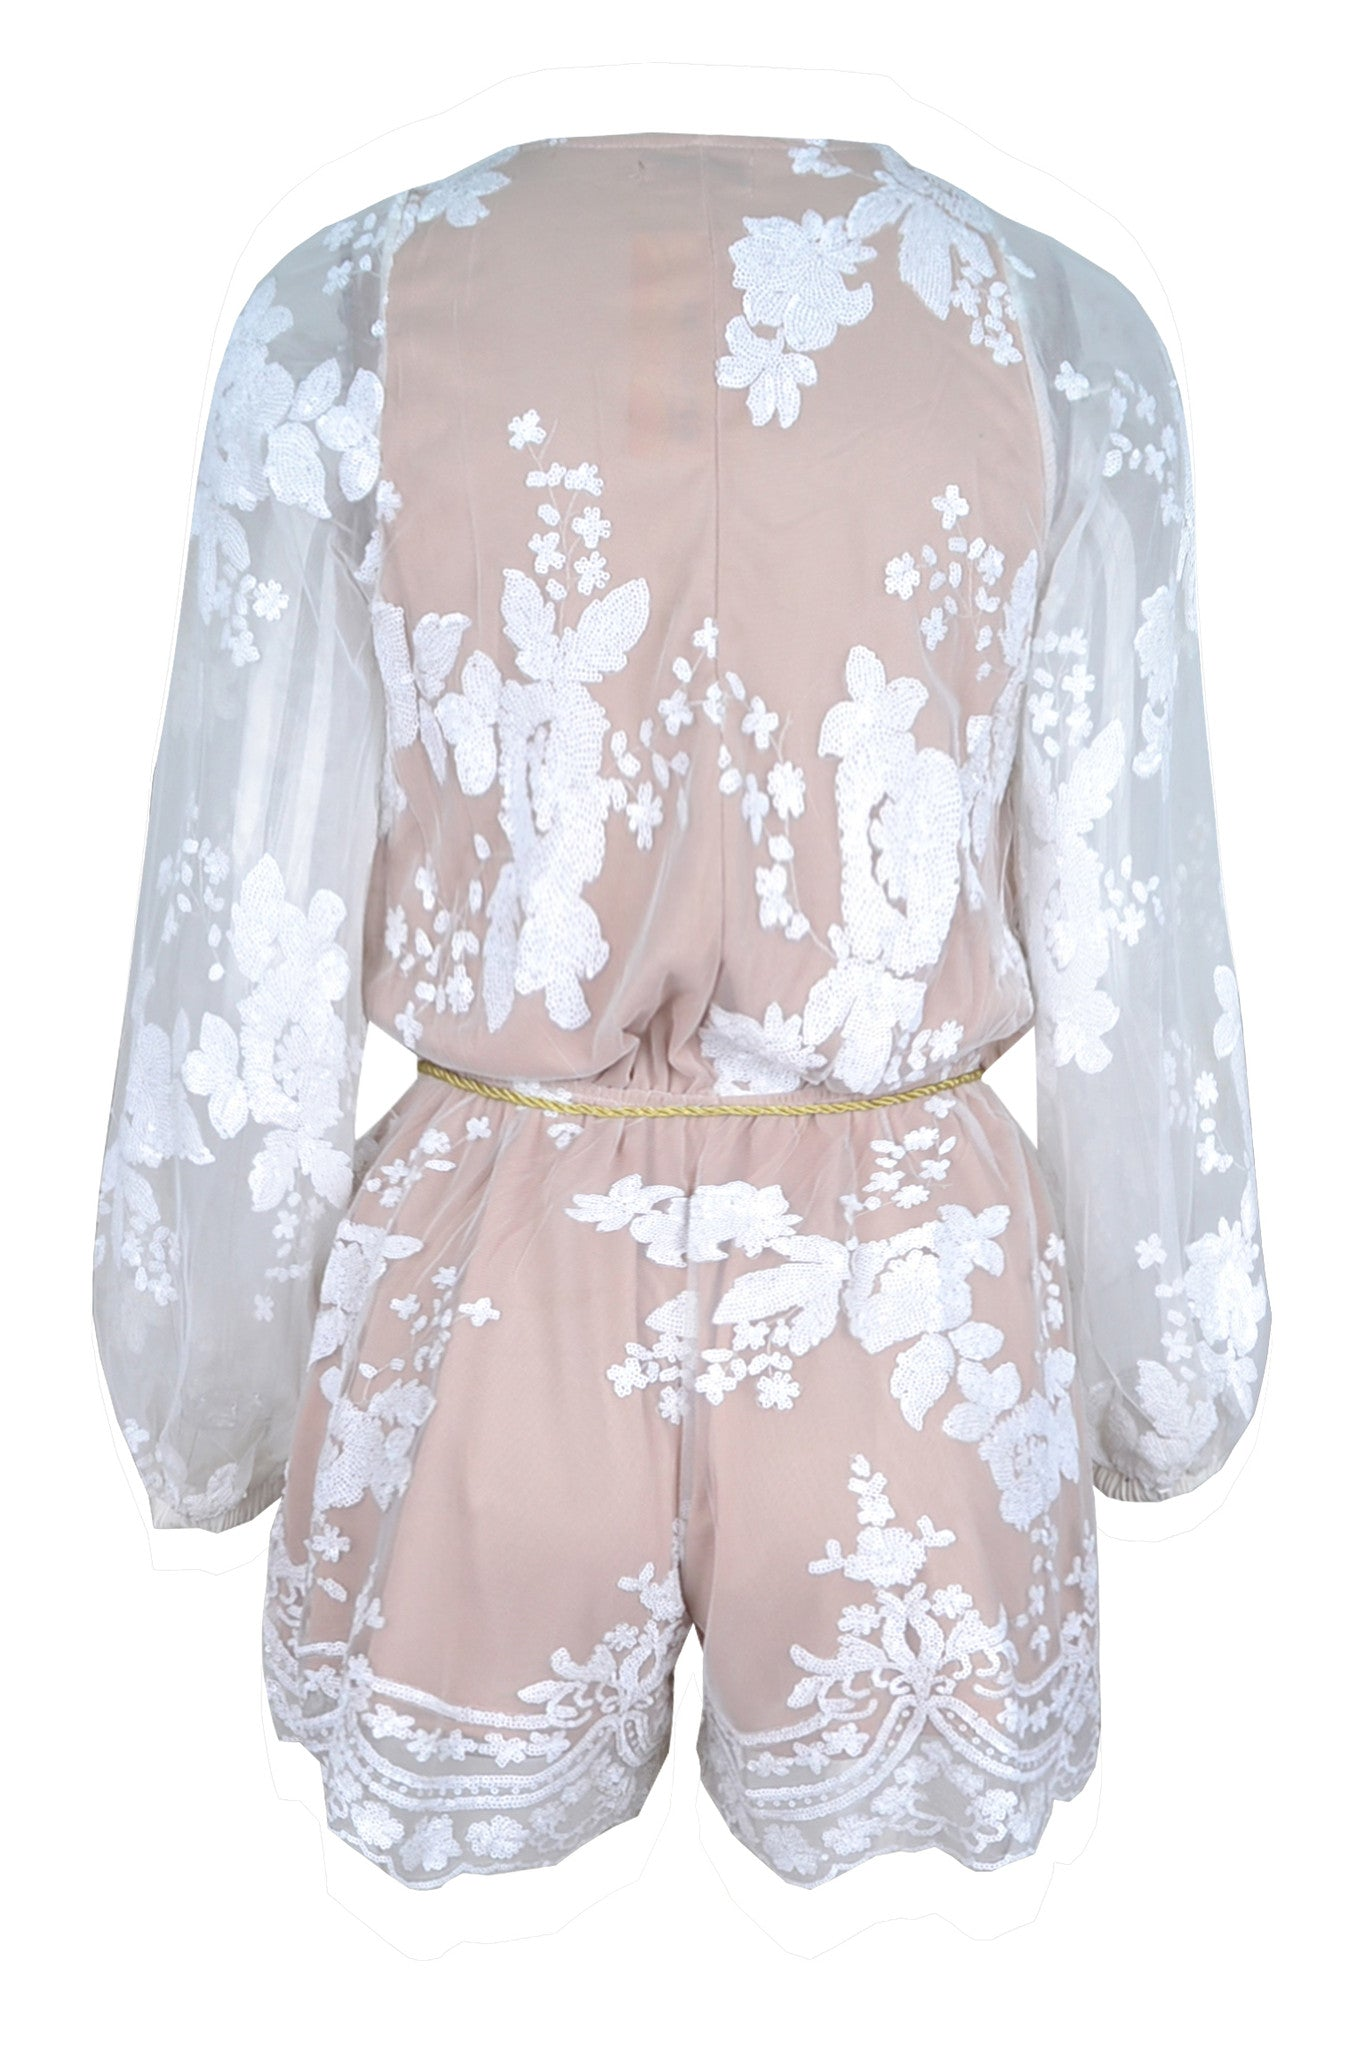 Lust Lux Playsuit - White - Lovecy - 5